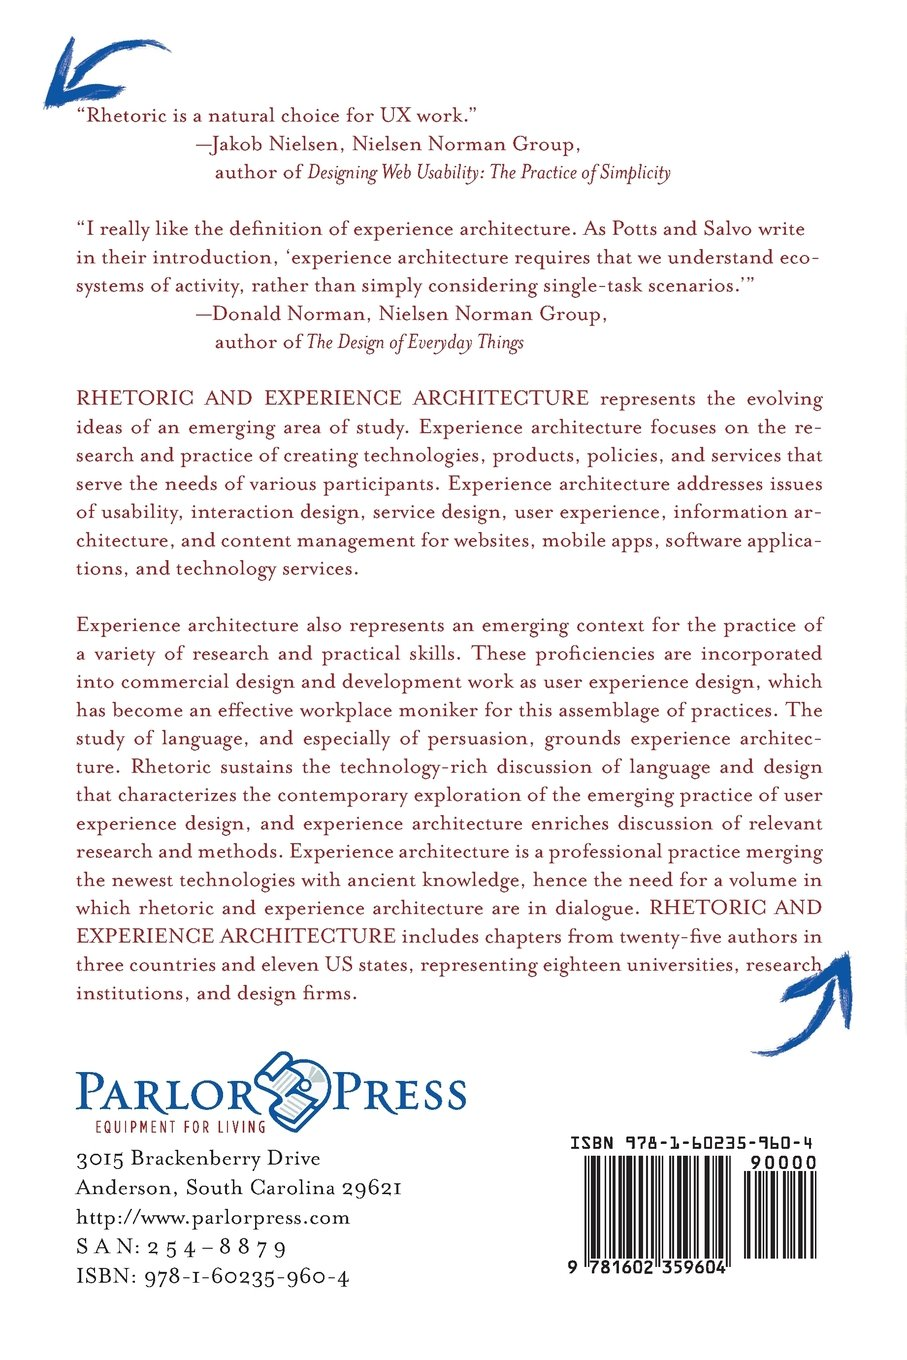 Rhetoric and Experience Architecture by Parlor Press